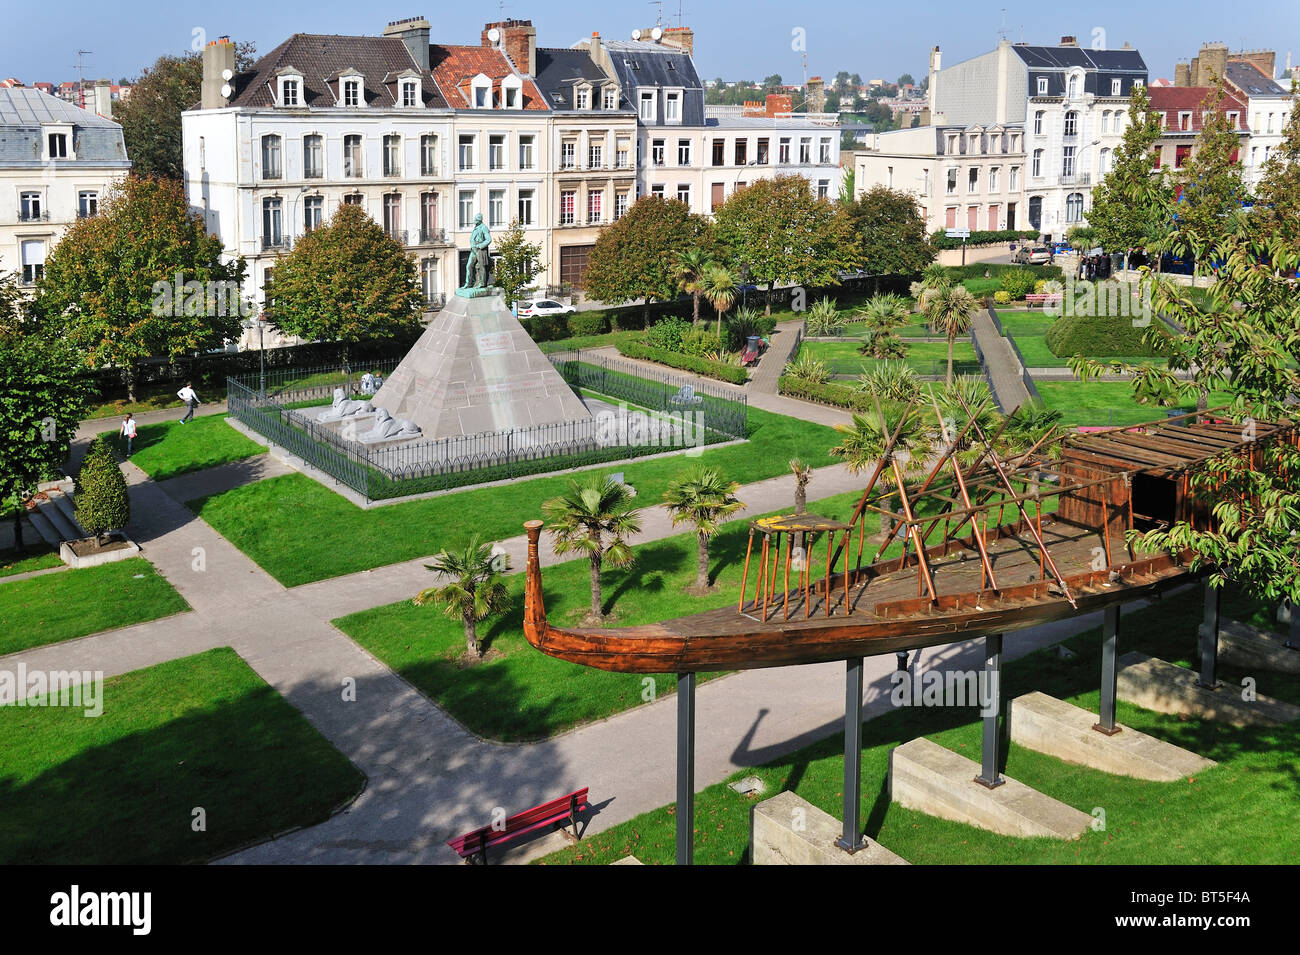 Replica of Egyptian wooden boat and statue of Auguste Mariette in city park at Boulogne-sur-Mer, France - Stock Image